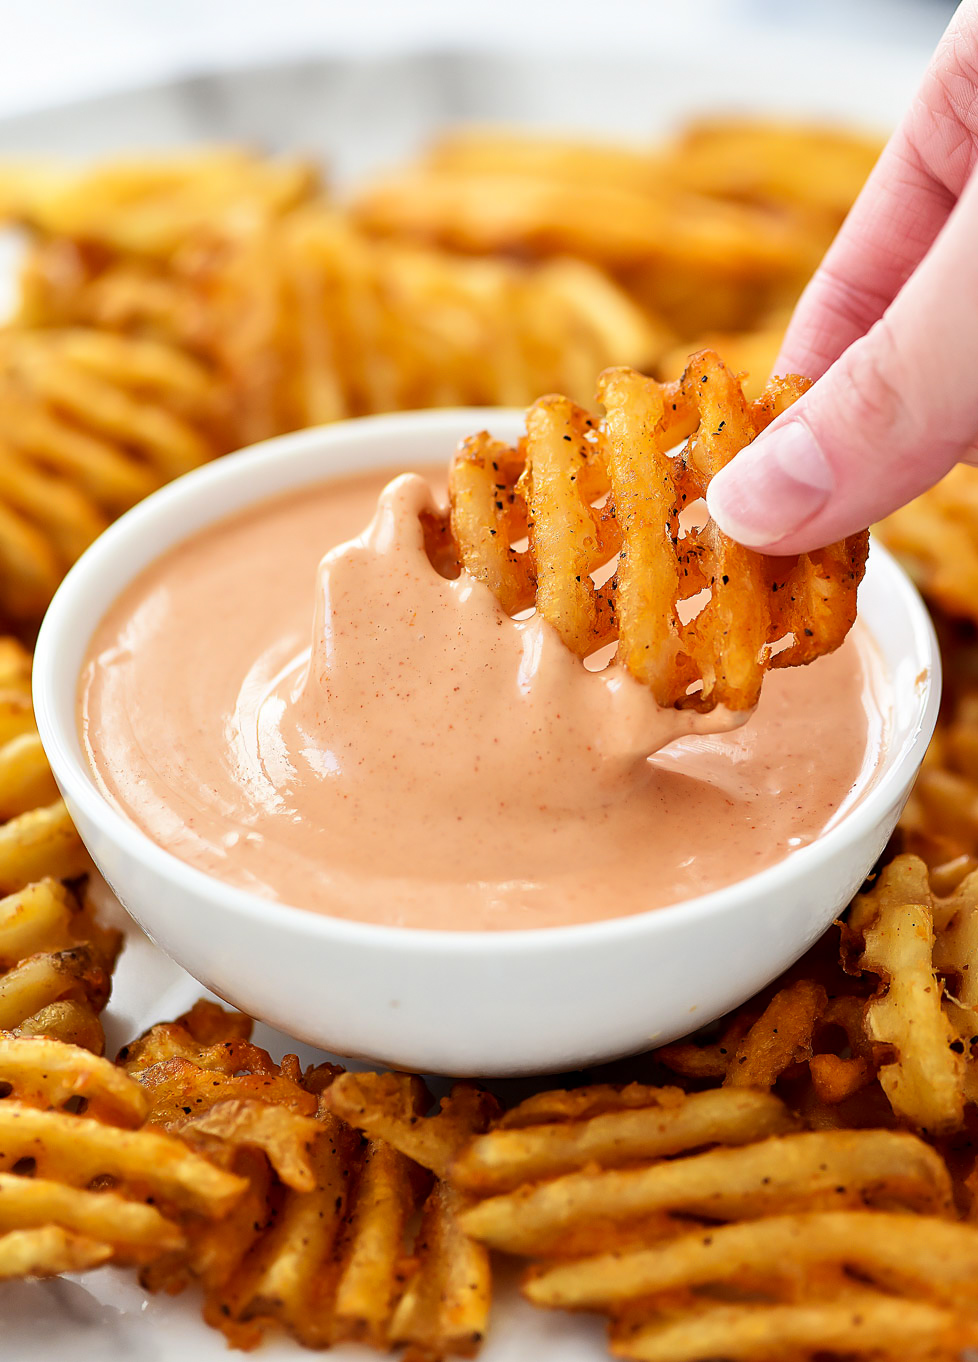 Utah Fry sauce is a French fry sauce made with ketchup, mayonnaise and other spices. Life-in-the-Lofthouse.com